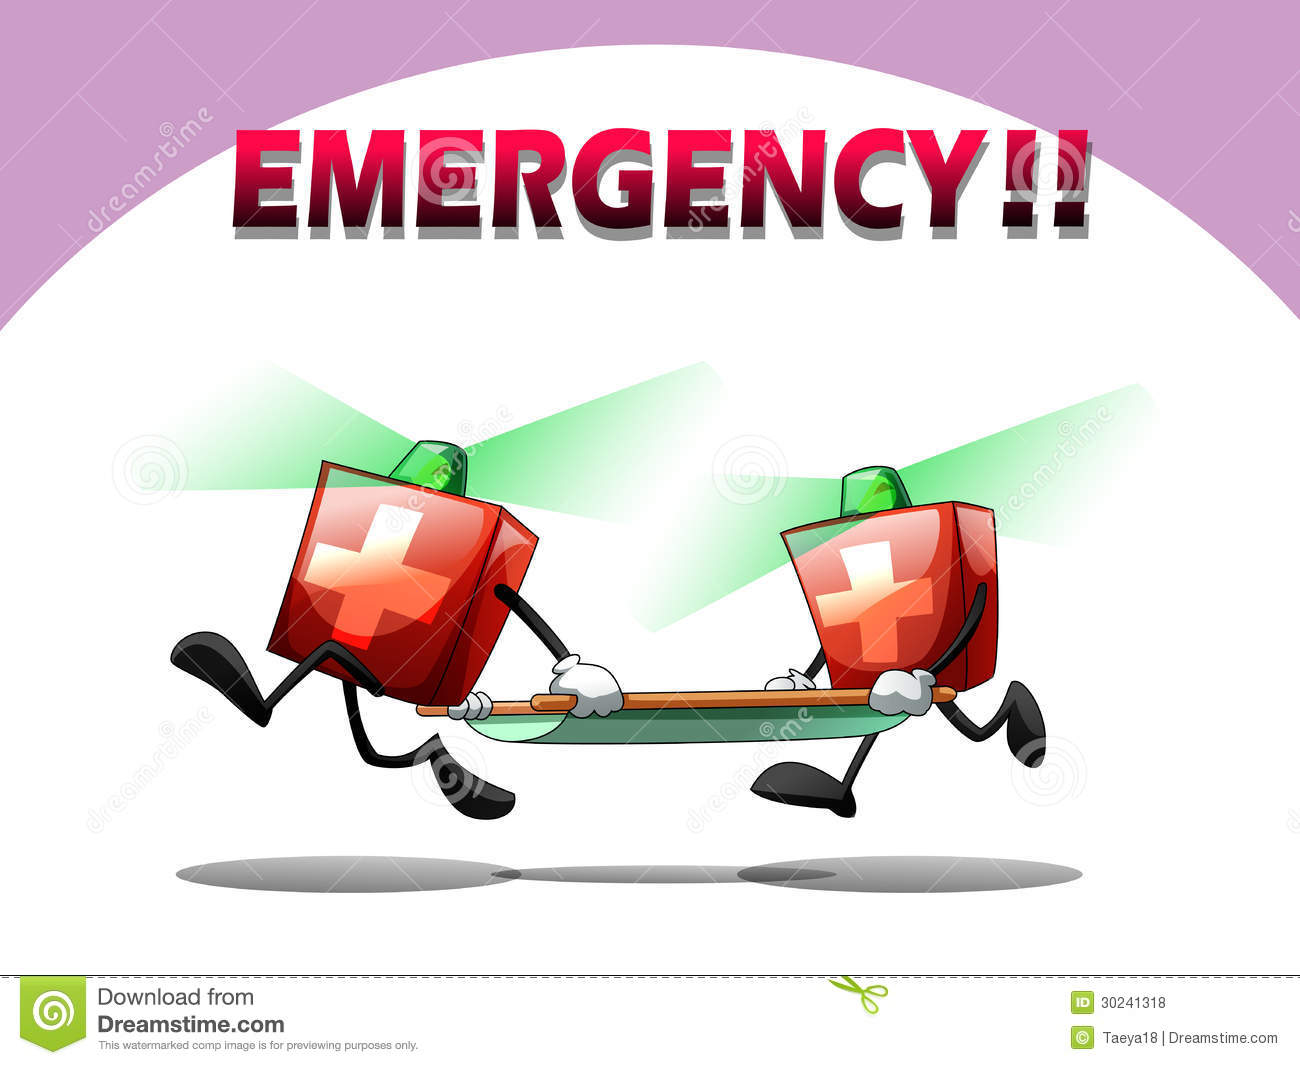 Emergency Rescue Royalty Free Stock Photos - Image: 30241318